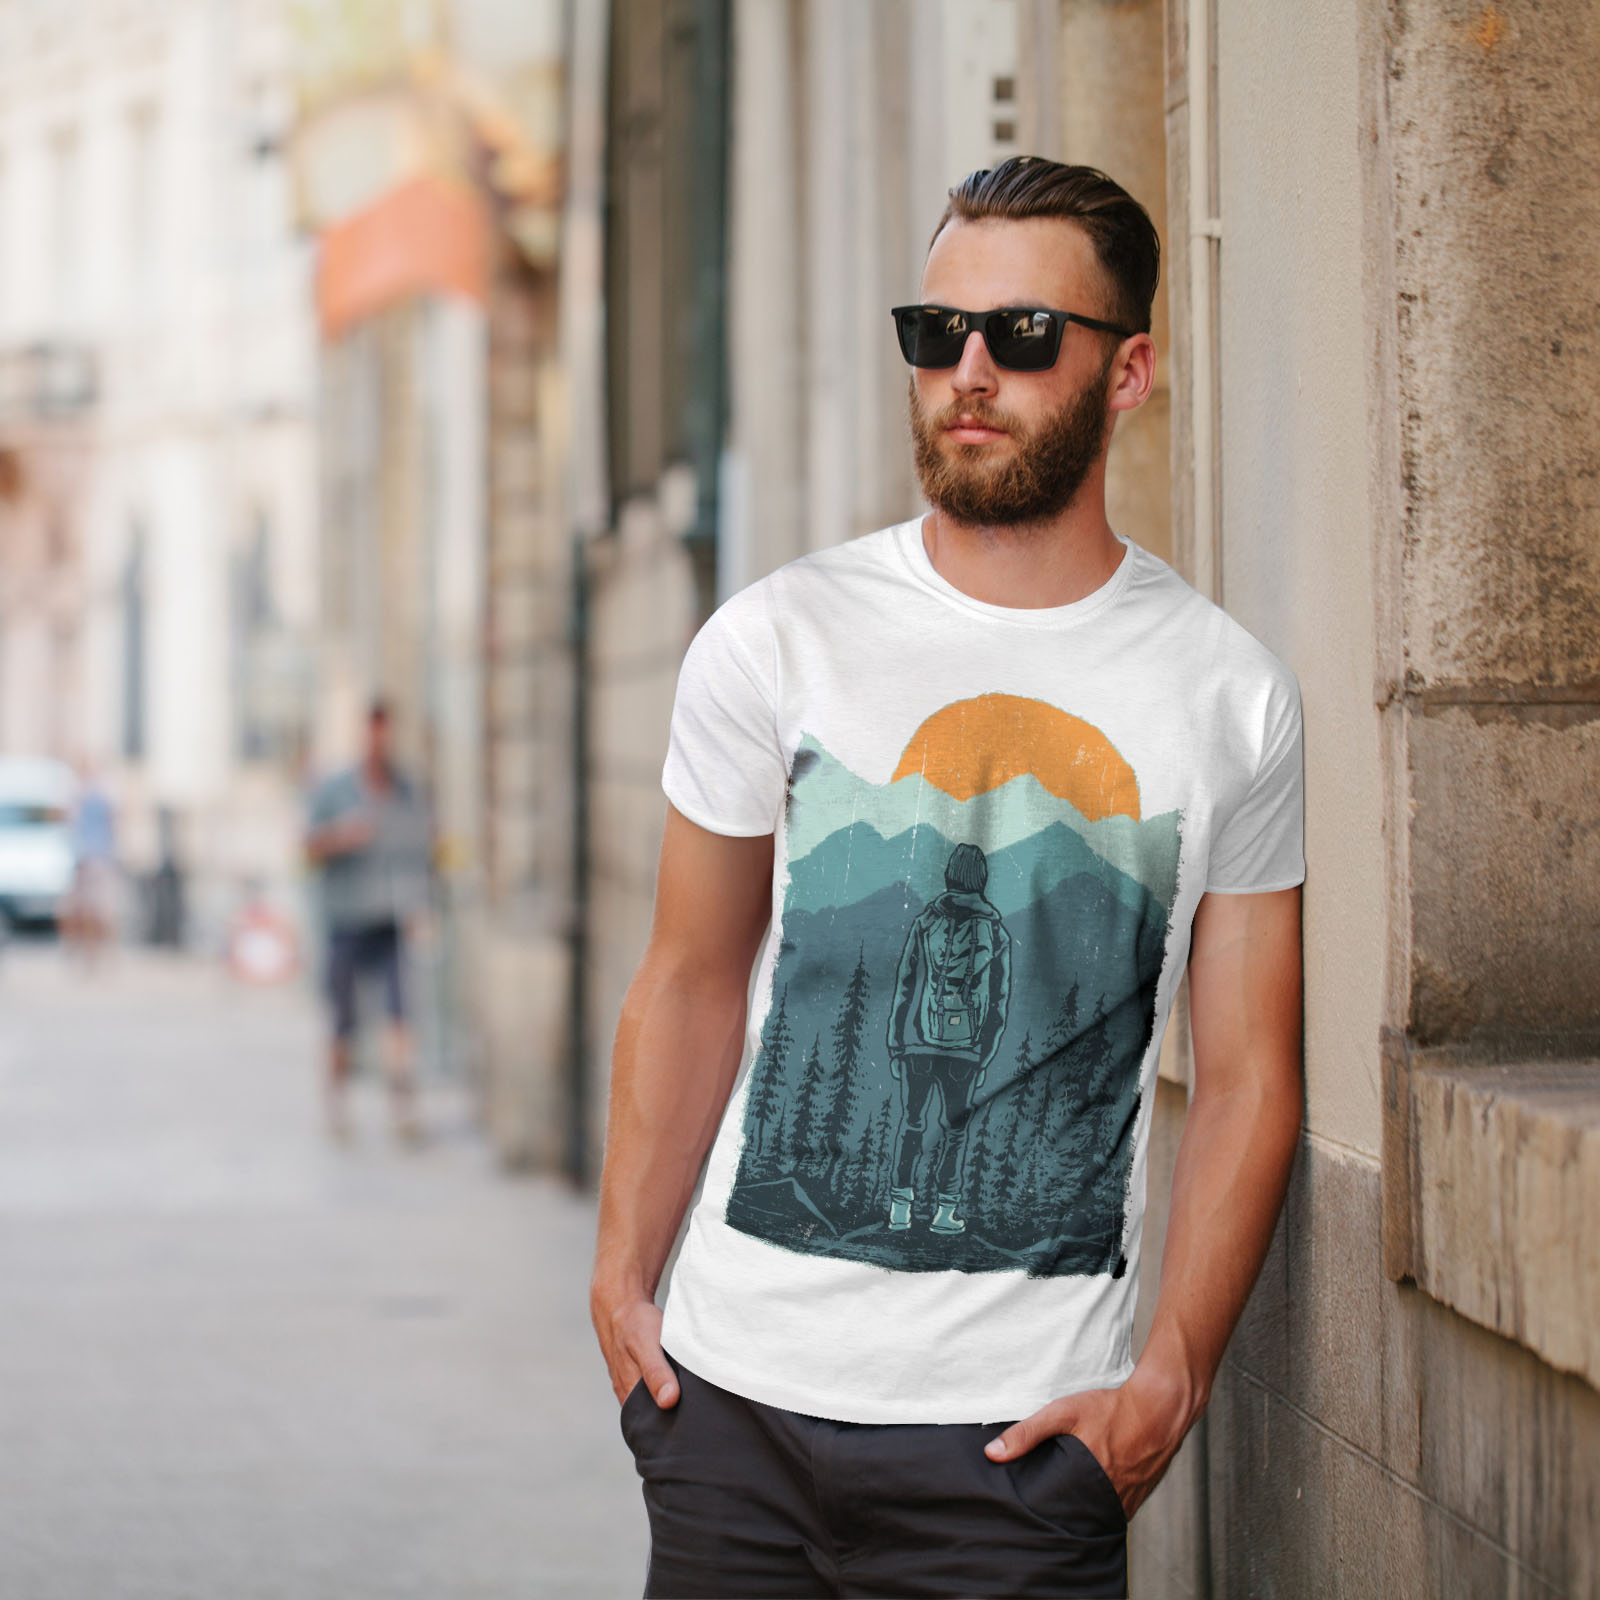 Wellcoda-SUNSET-Wilderness-CAMP-Da-Uomo-T-shirt-Wild-design-grafico-stampato-T-shirt miniatura 11